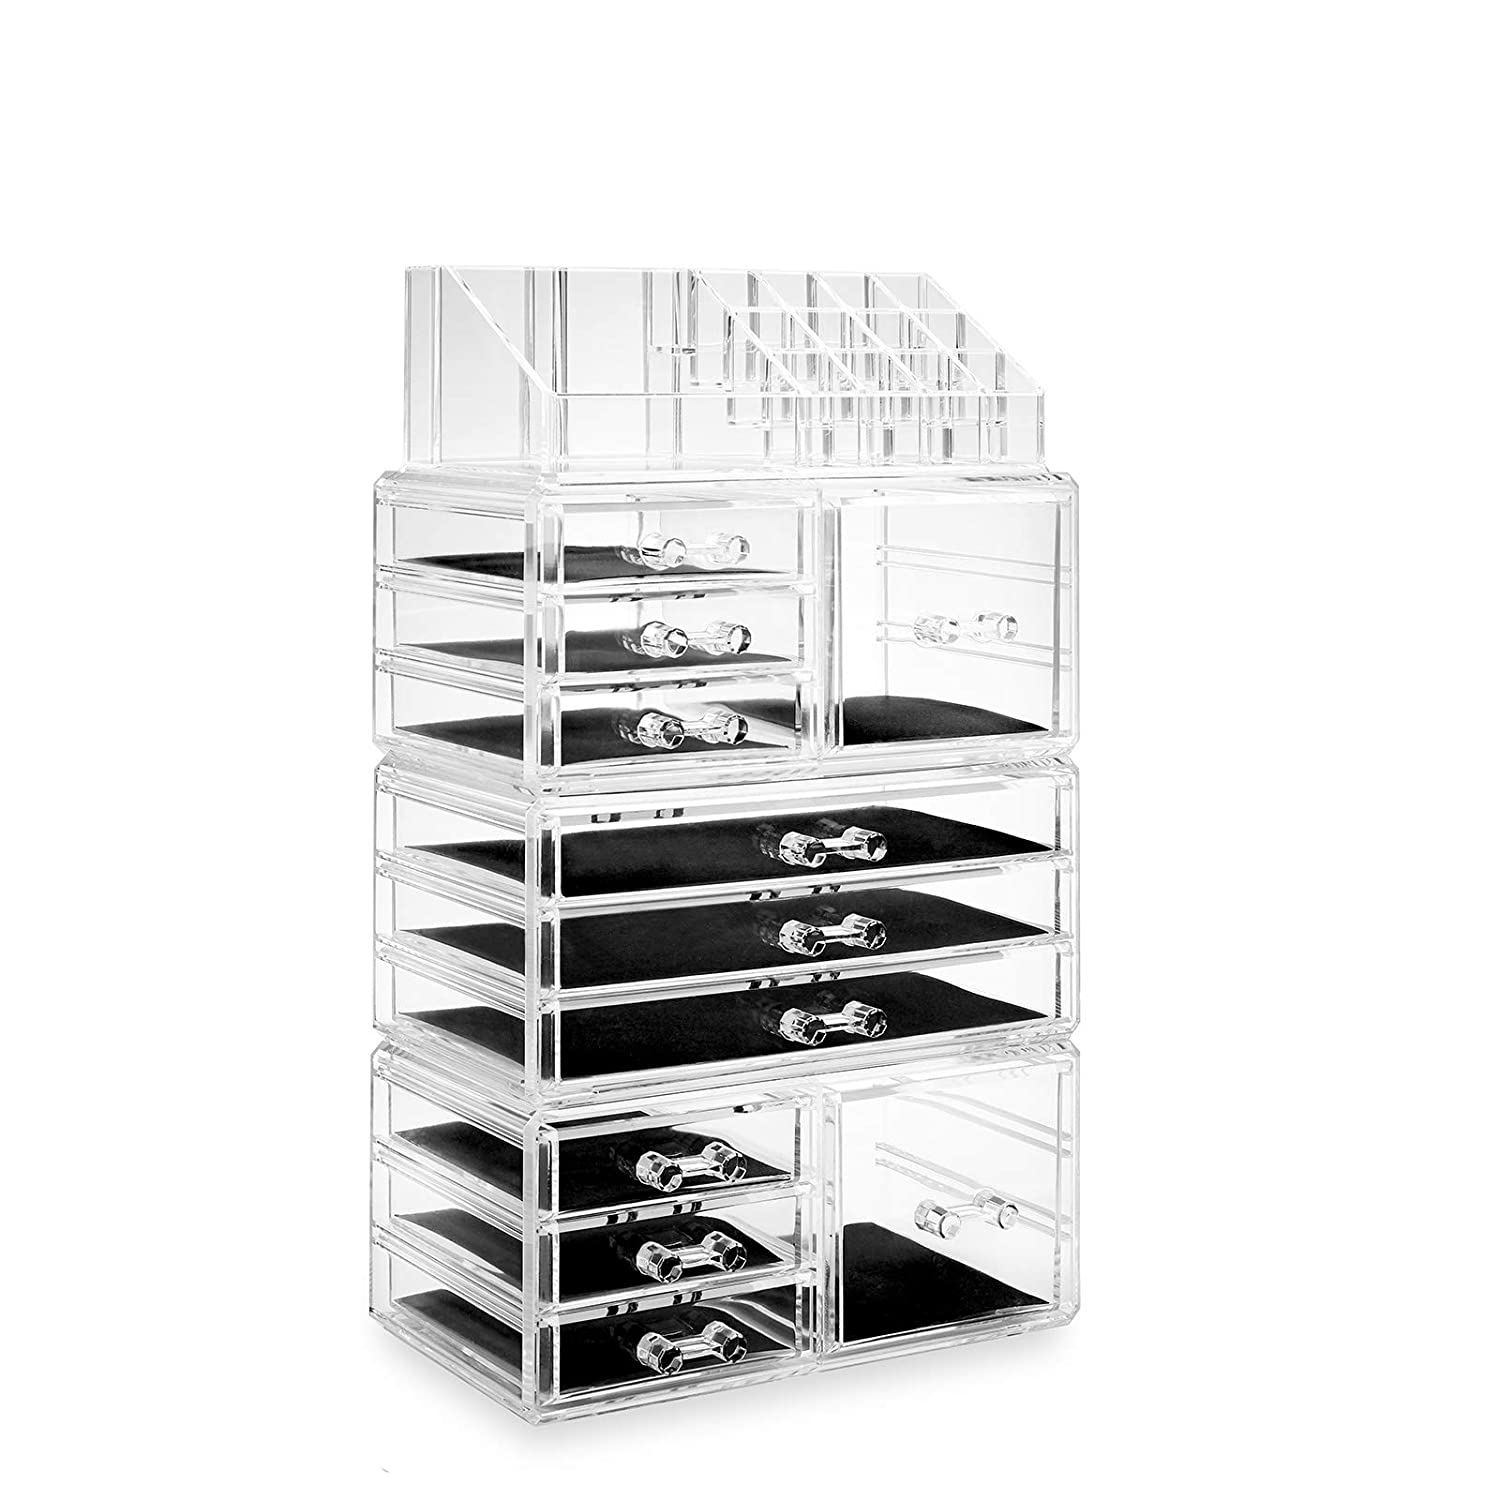 Casafield Acrylic Cosmetic Makeup Organizer & Jewelry Storage Display Case - Large 16 Slot, 2 Box & 9 Drawer Set - Clear